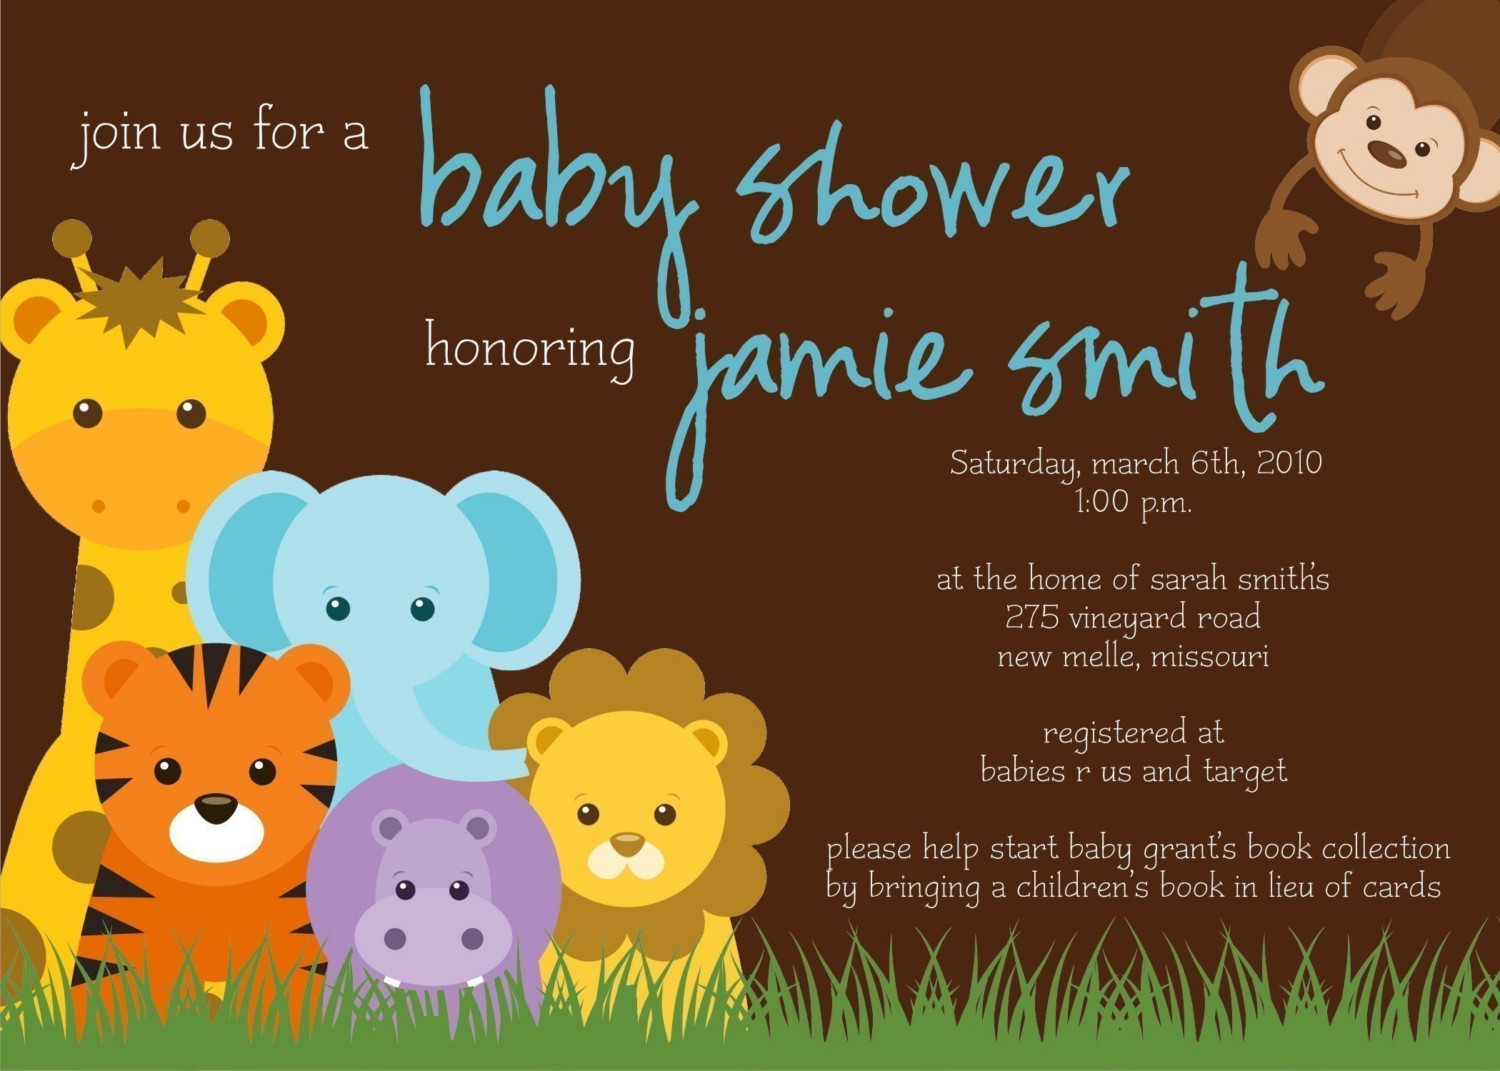 Example Jungle Plus Animal Print Ba Shower Invitation Wording within size 1500 X 1071